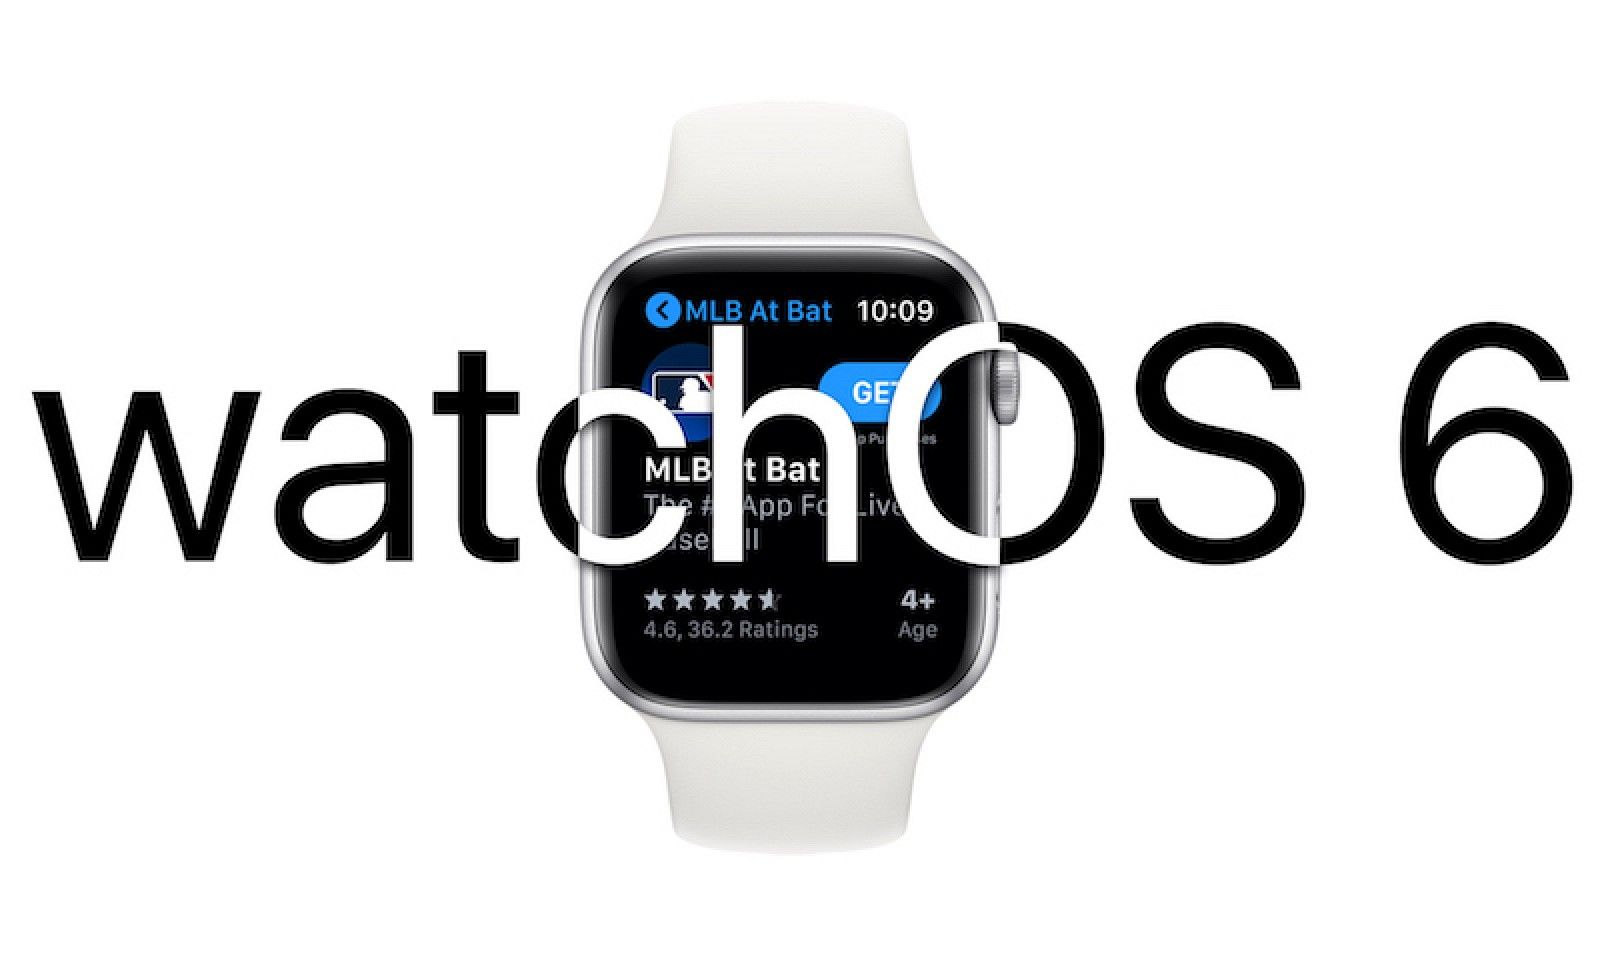 Https News Of Today Telling The Untold News Apple This Morning Released The Second Beta Of Watchos 6 Apple Watch Models Apple Watch Apple Watch Fashion